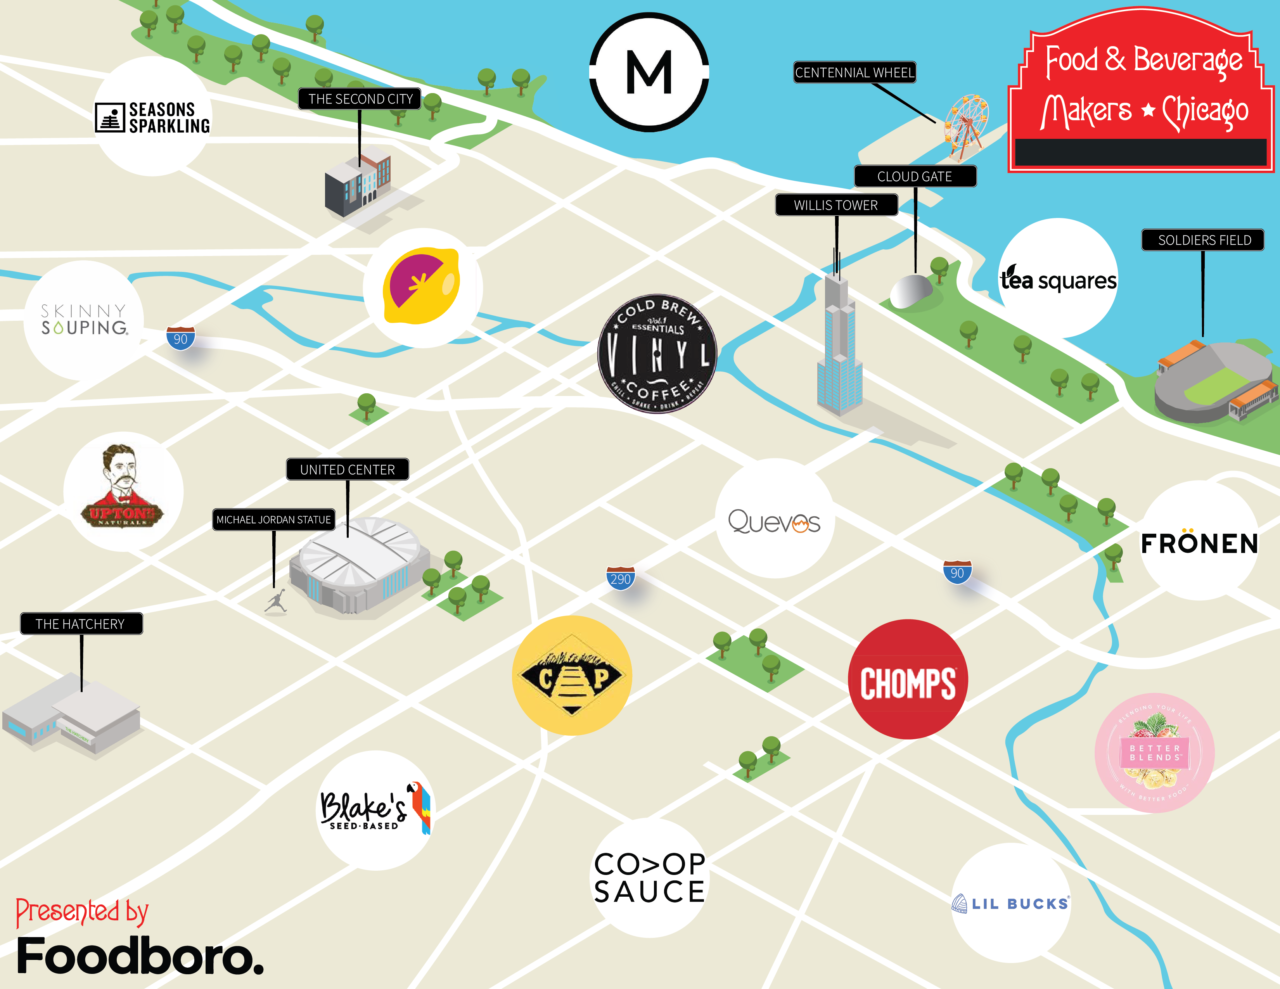 15 of Chicago's Hottest Emerging Food and Beverage Companies